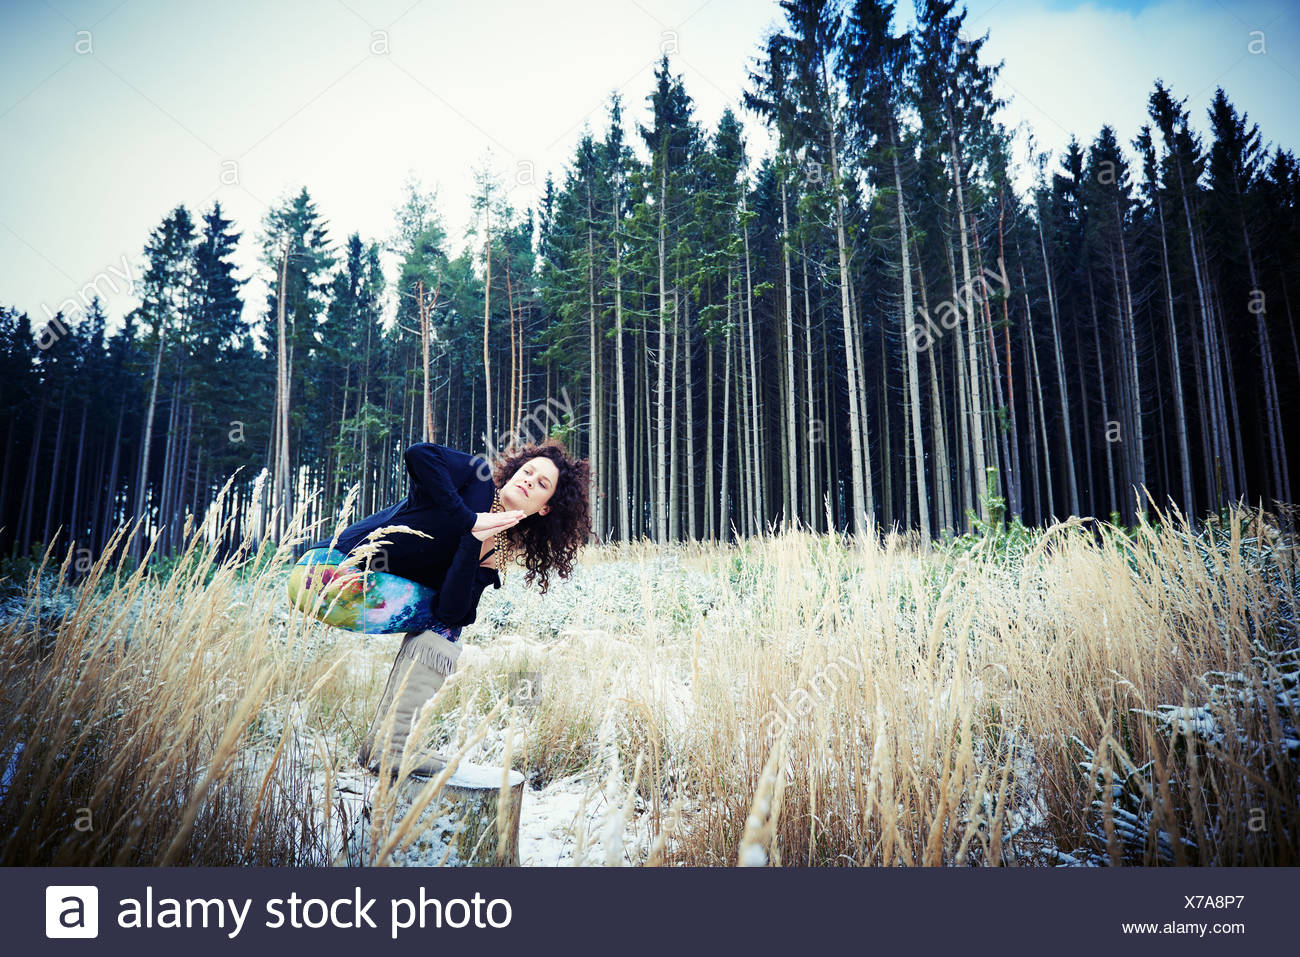 Mid adult woman practicing yoga moves in forest - Stock Image